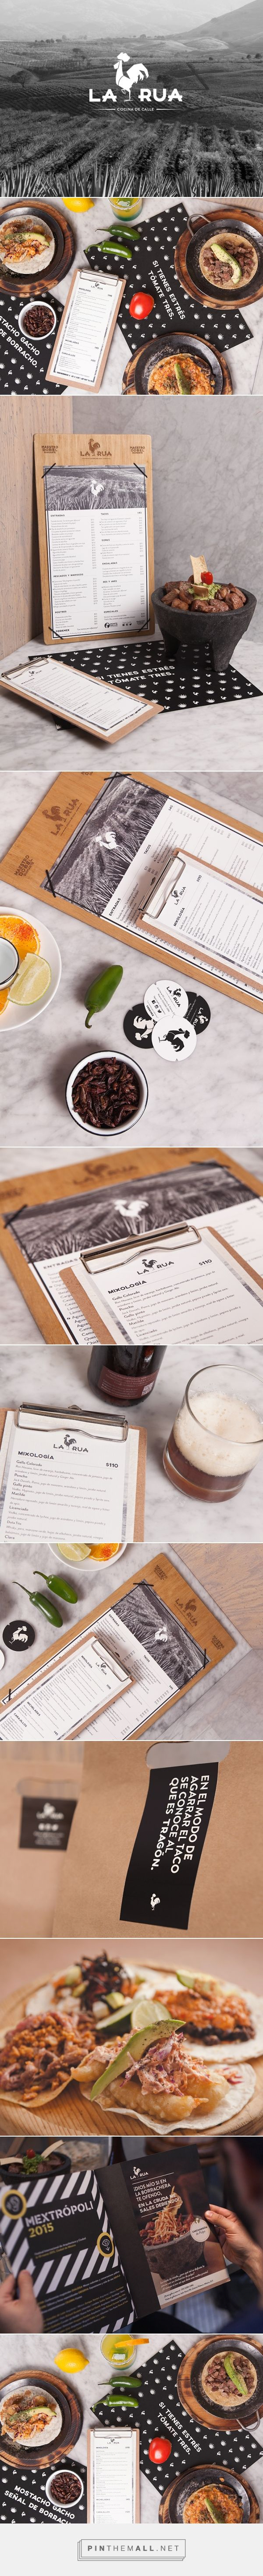 LA RUA Restaurant and Bar Branding and Menu Design by The Branding People | Fivestar Branding Agency – Design and Branding Agency & Curated Inspiration Gallery